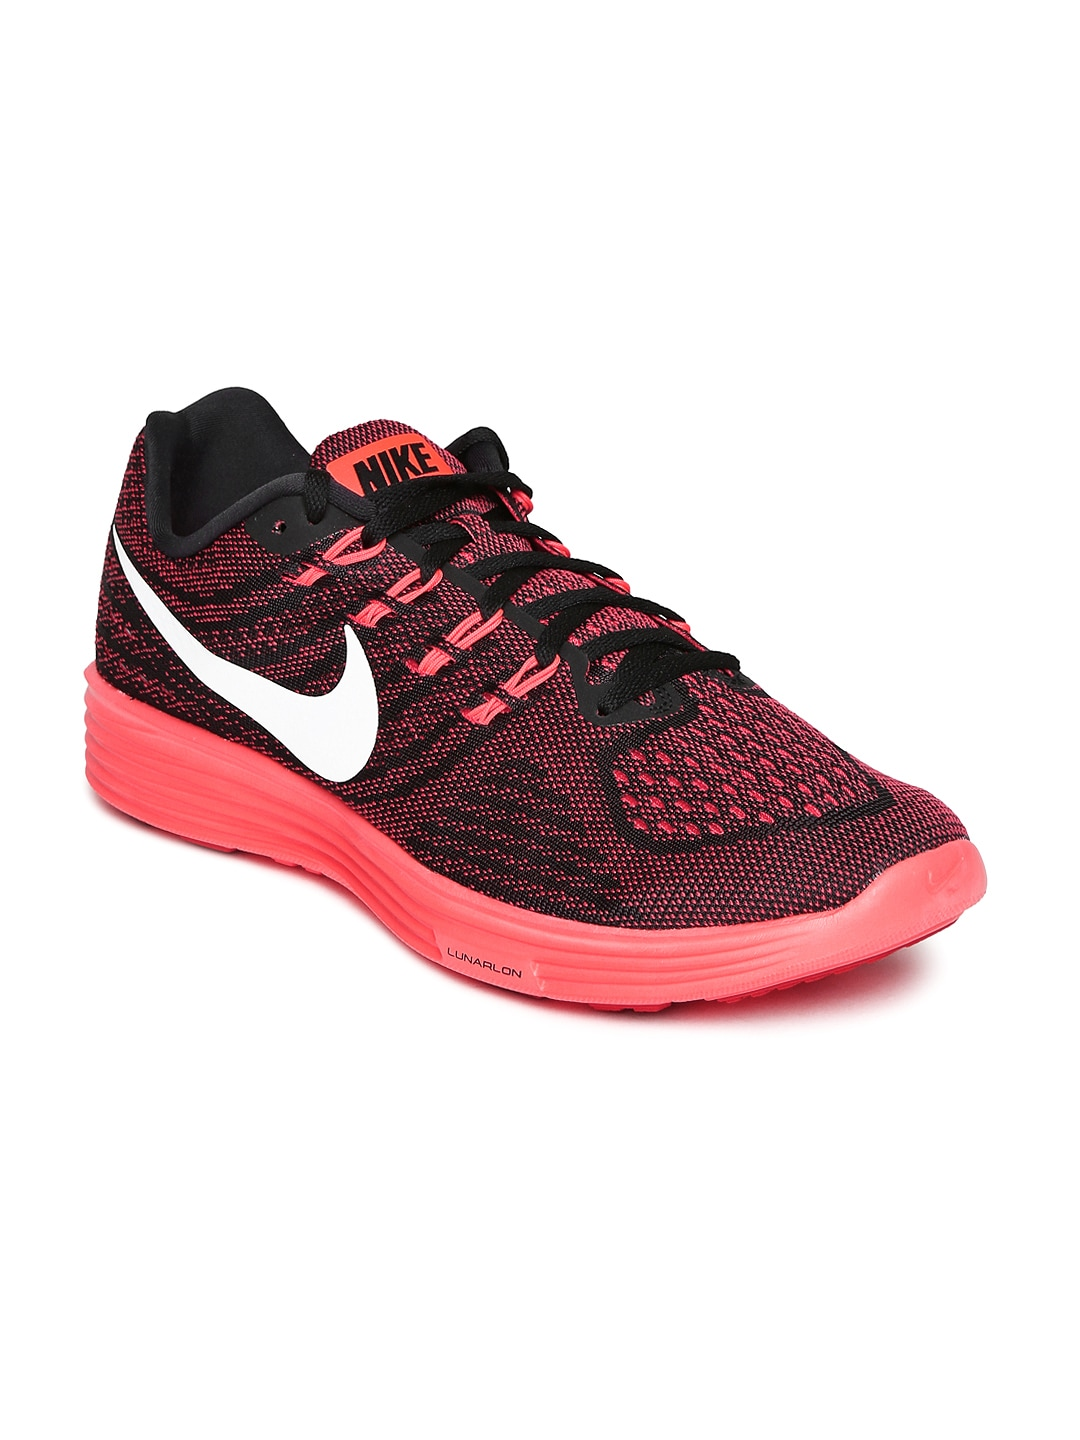 big sale eafef fc43f Nike Shoes - Buy Nike Shoes for Men  Women Online  Myntra